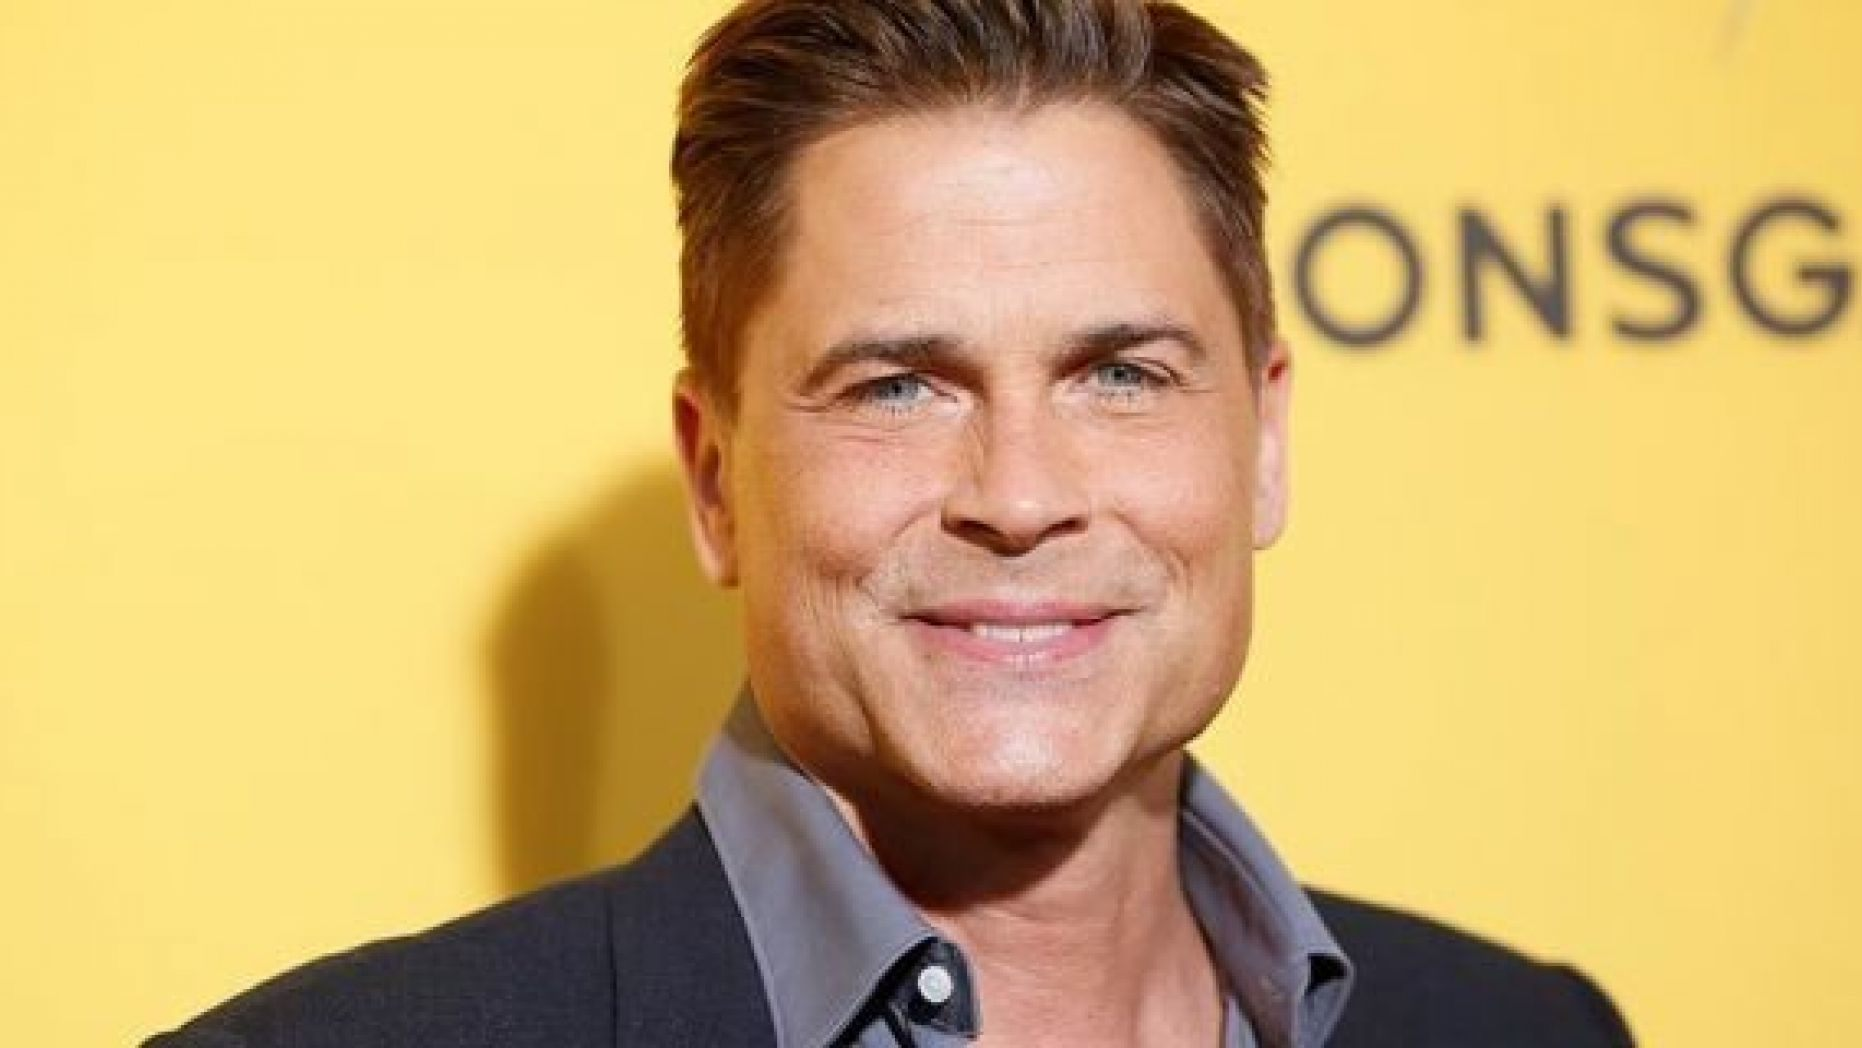 Rob Lowe's twitter about Sen. Elizabeth Warren was not well-received by some in Hollywood. (Reuters)